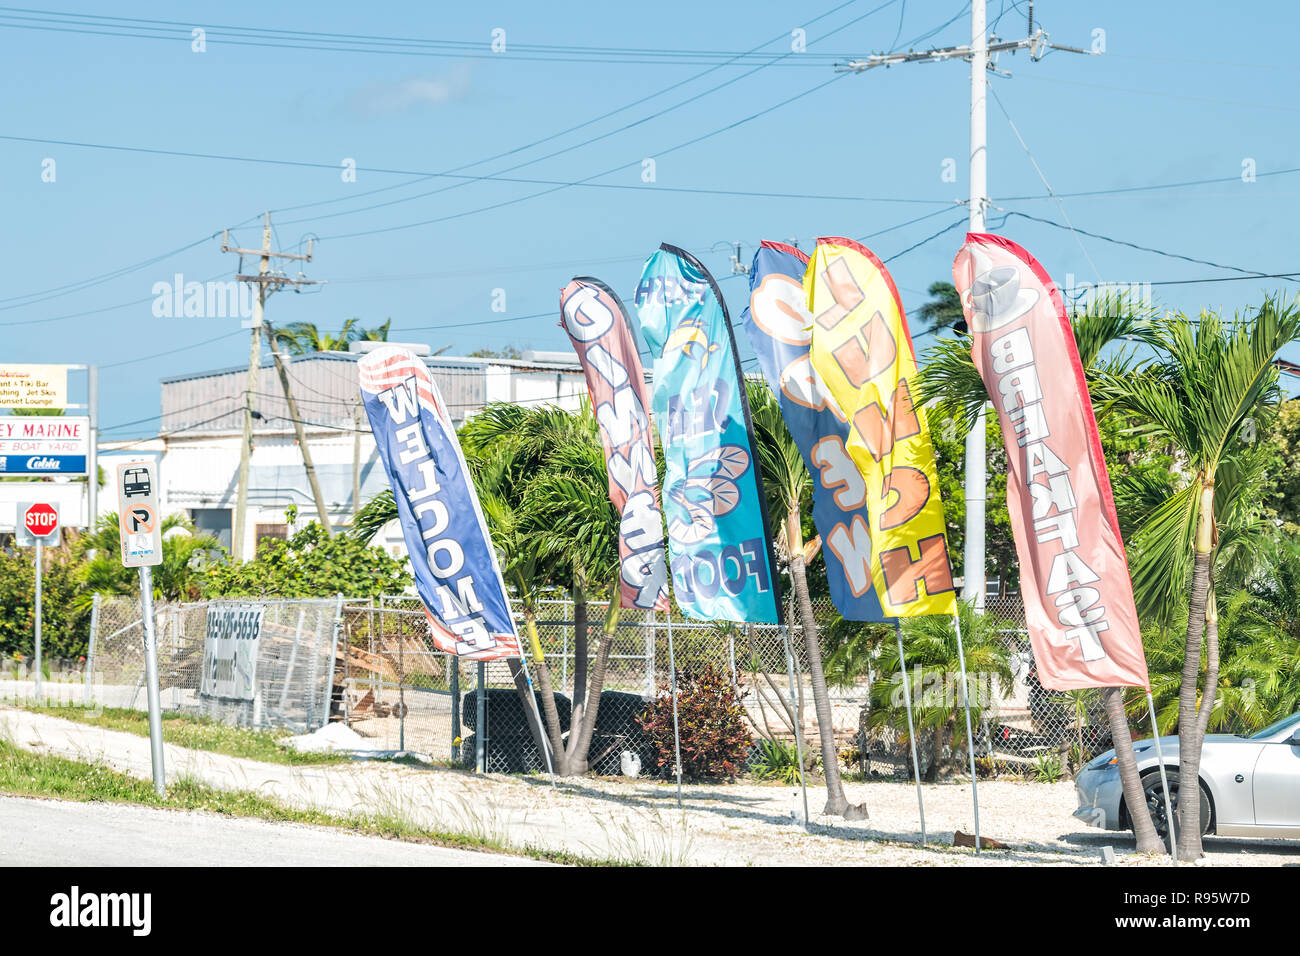 Marathon Usa May 1  Grill Bar Seafood Local Restaurant Signs Colorful Banners Flags Parking Lot On Overseas Highway Road Us1 In